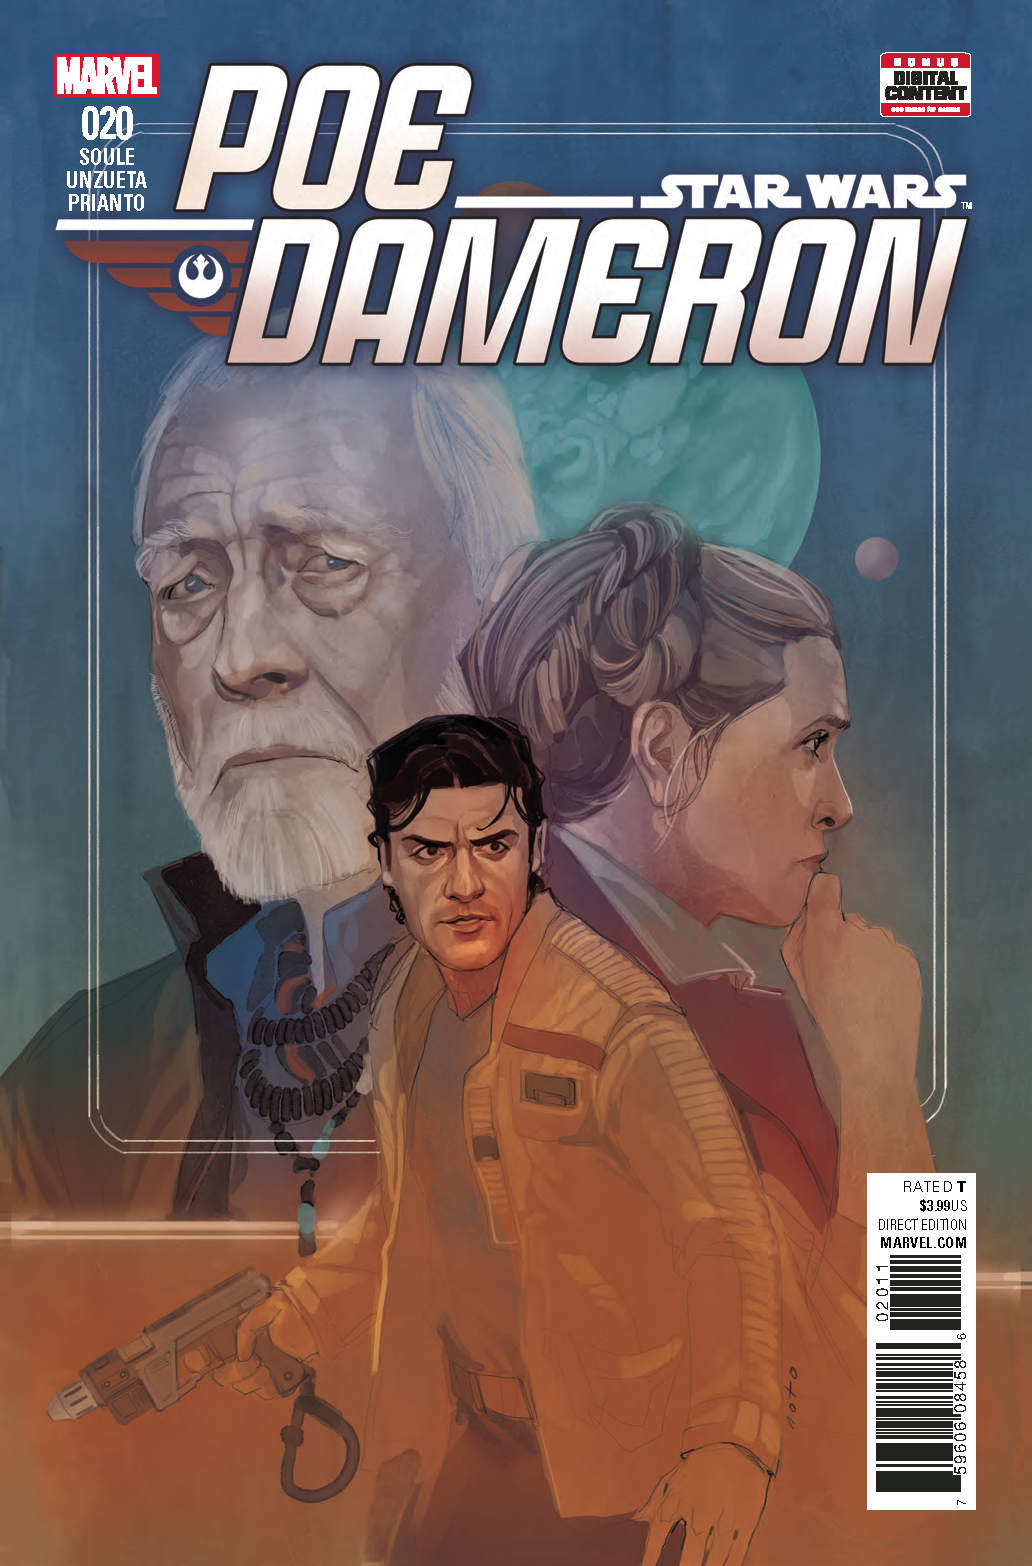 STAR WARS POE DAMERON #20